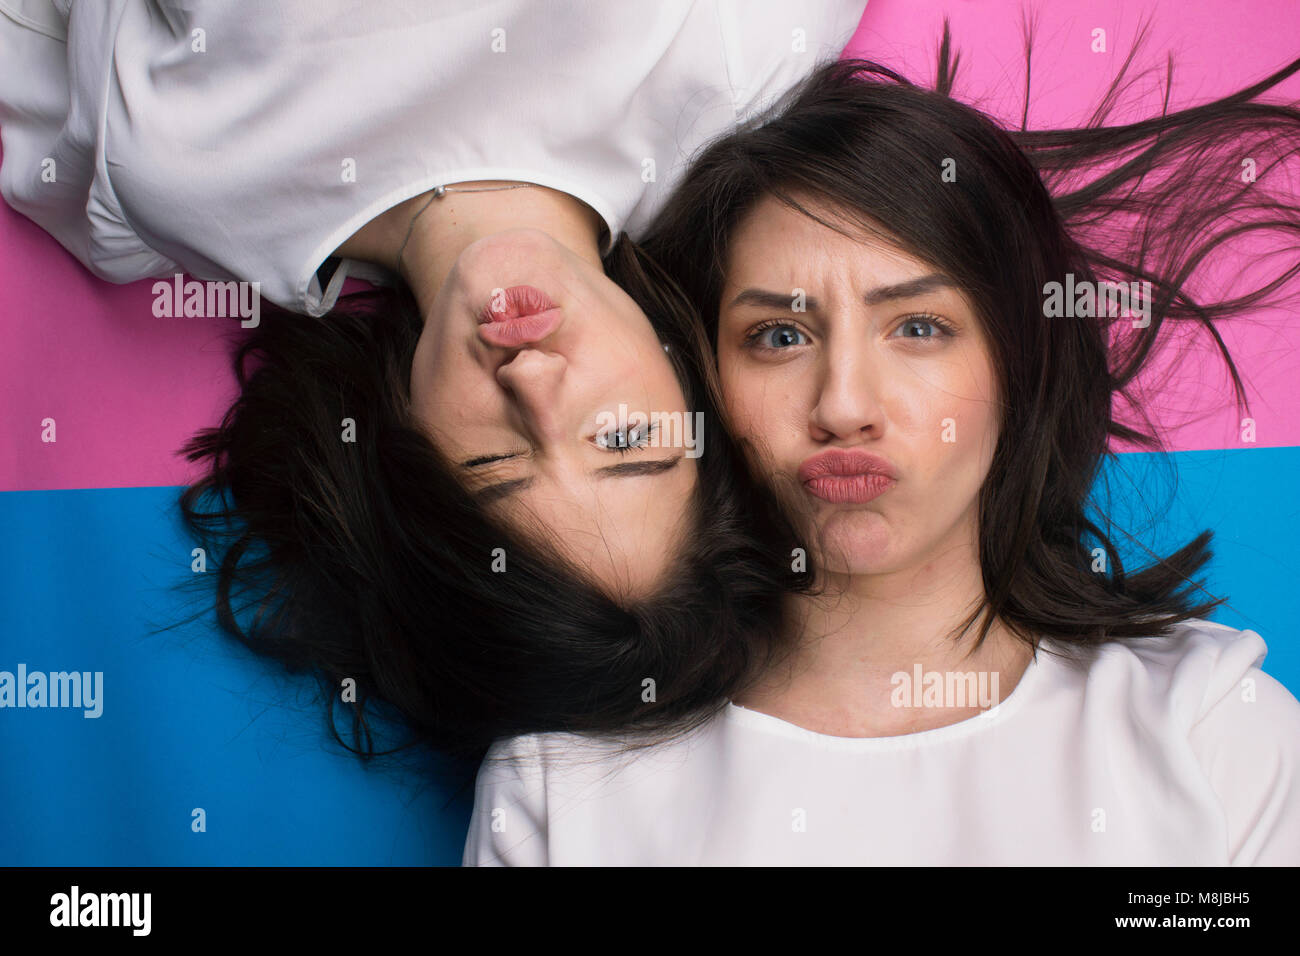 young attractive girls making faces at camera - Stock Image